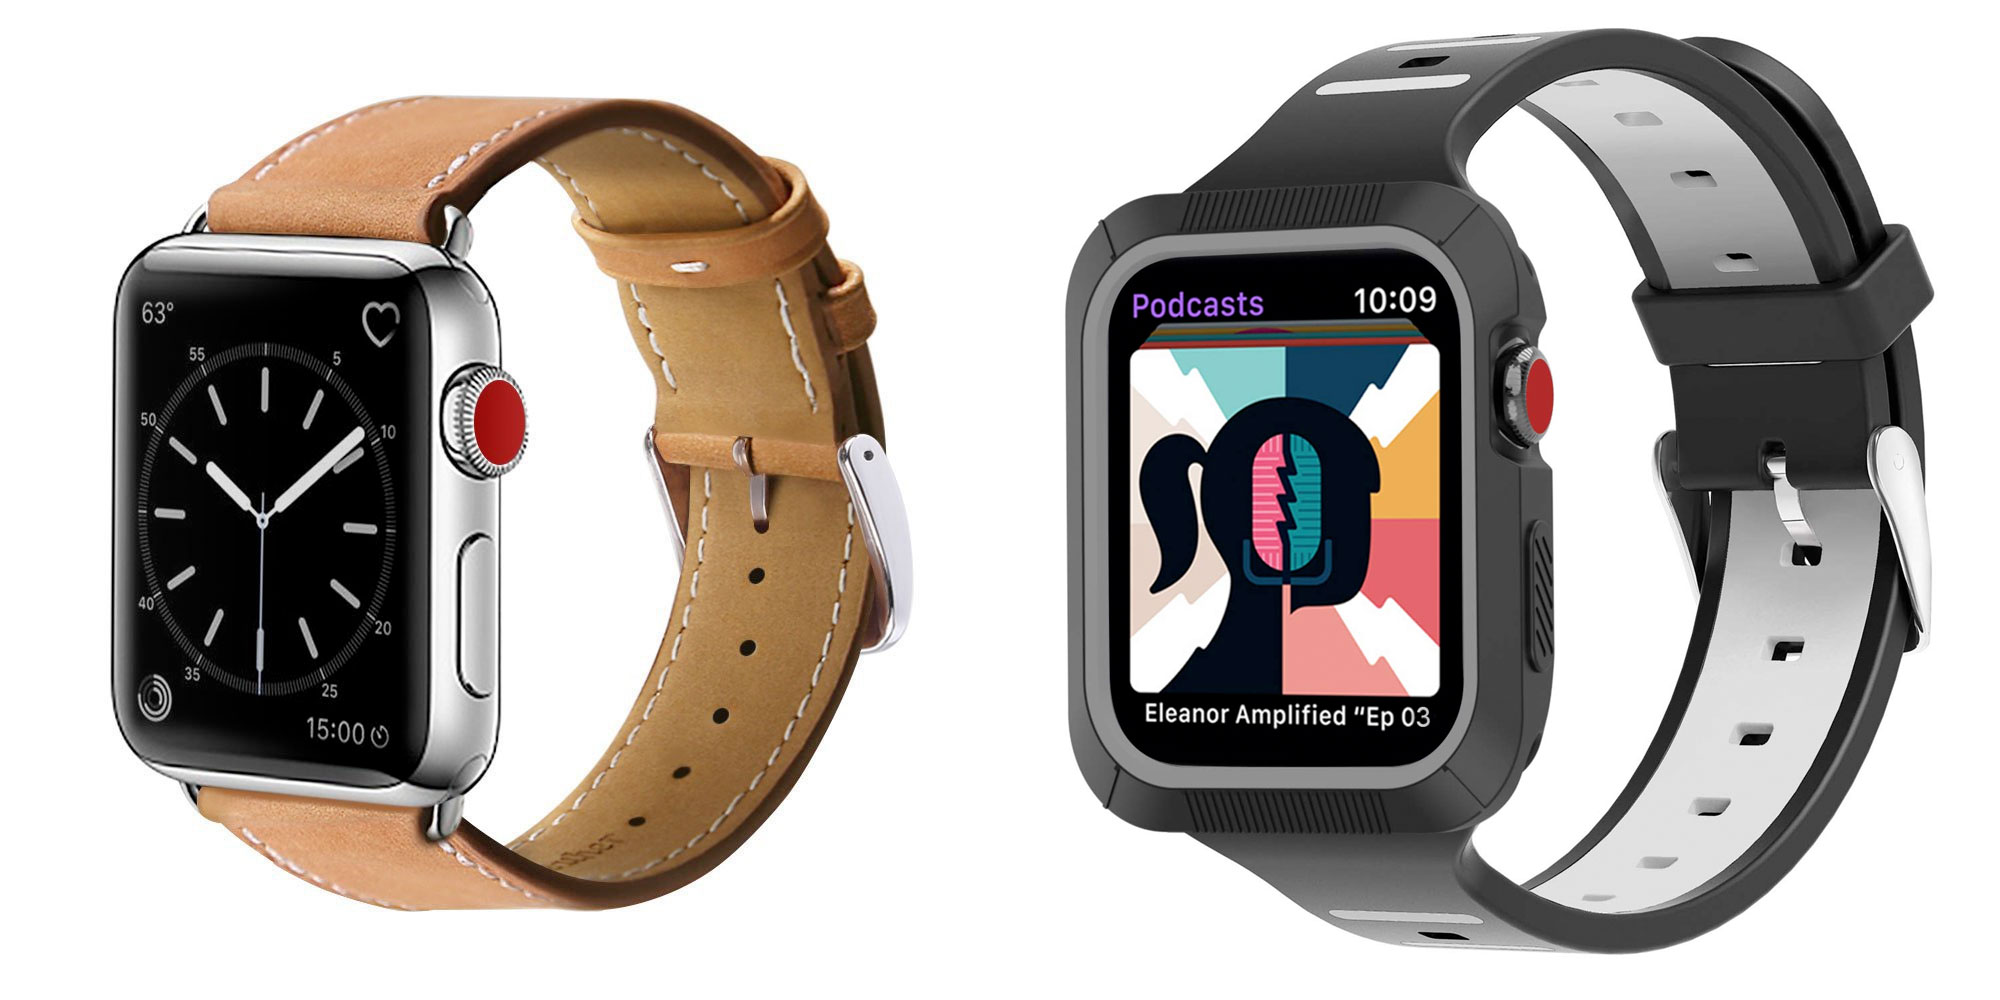 Make your Apple Watch ready for any occasion w/ these leather or silicone bands from $6